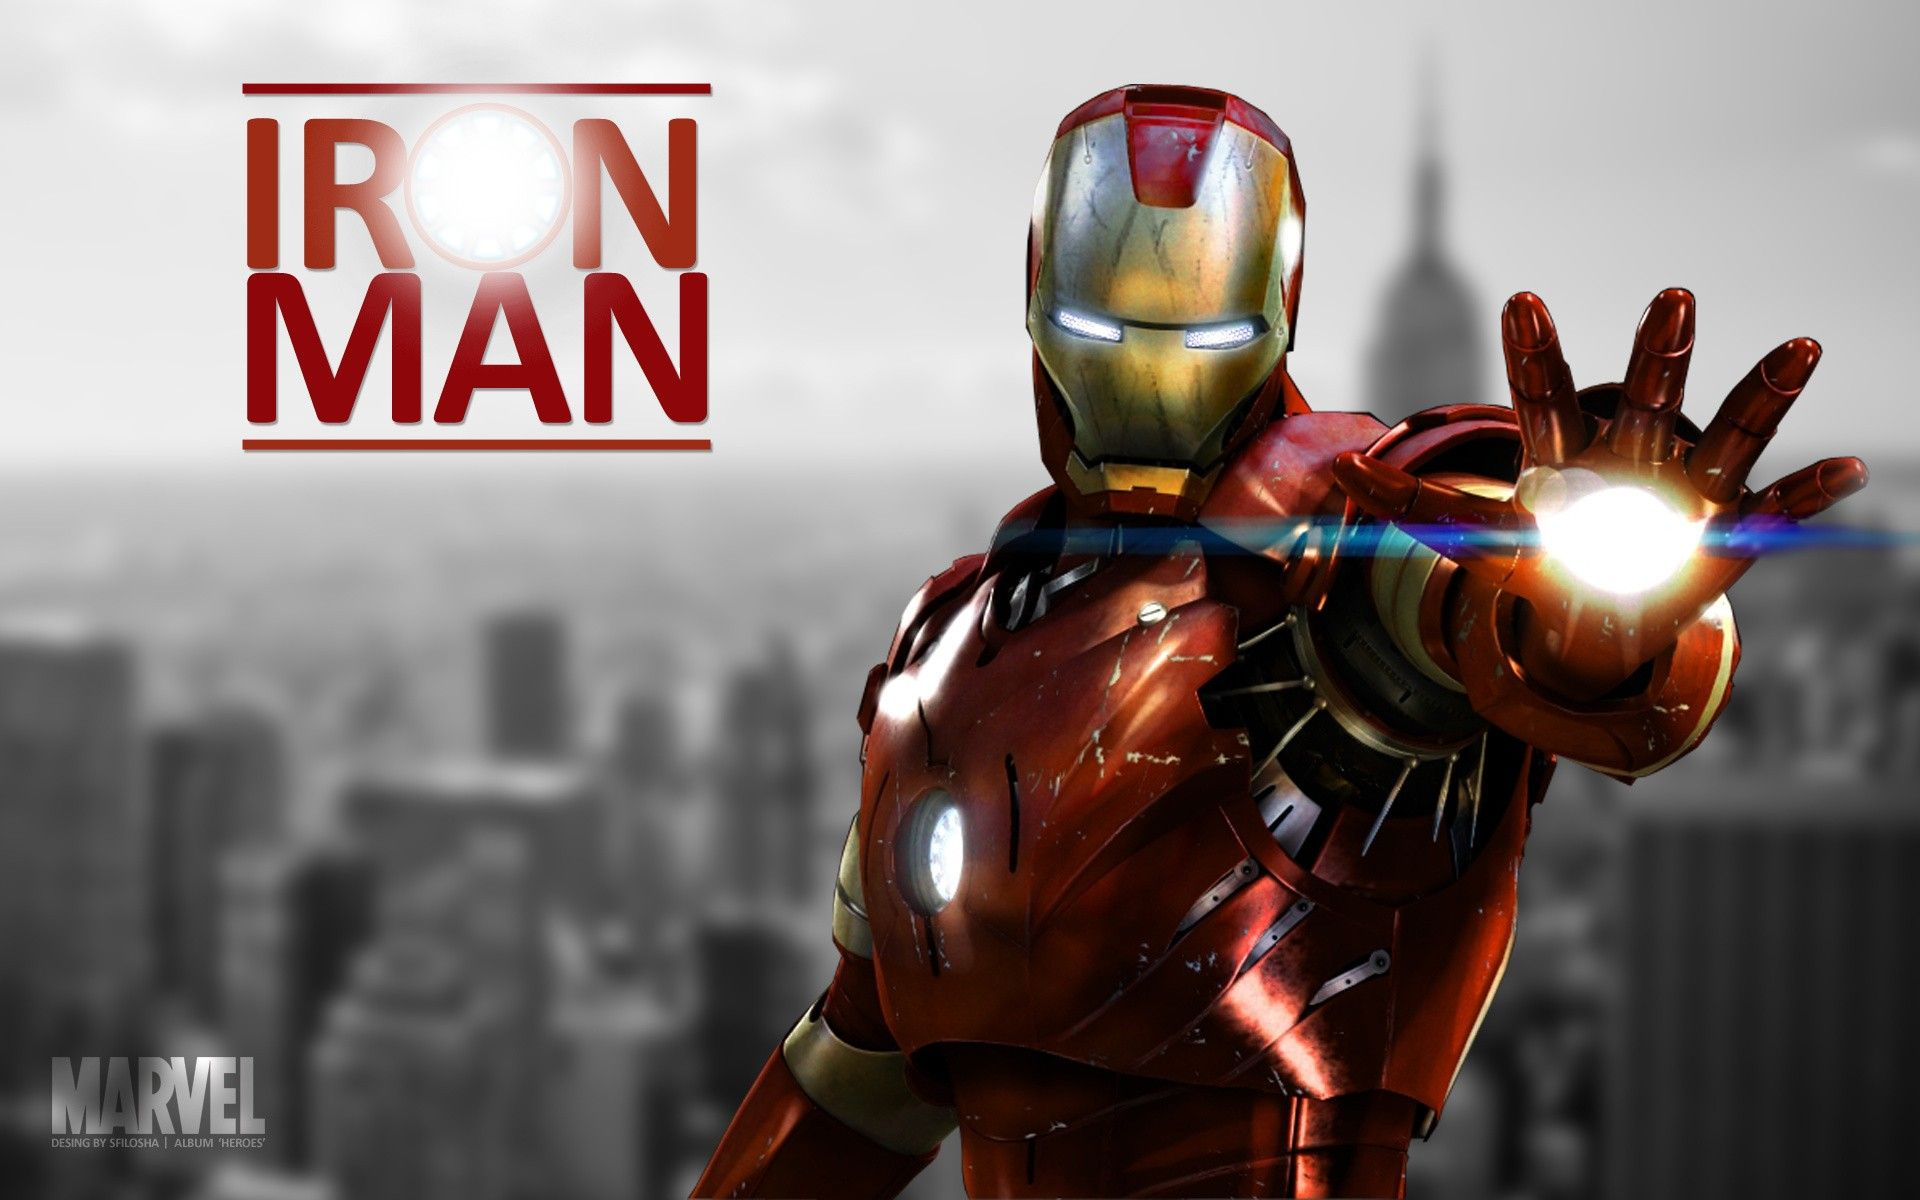 Iron Man Wallpaper Pagina Do